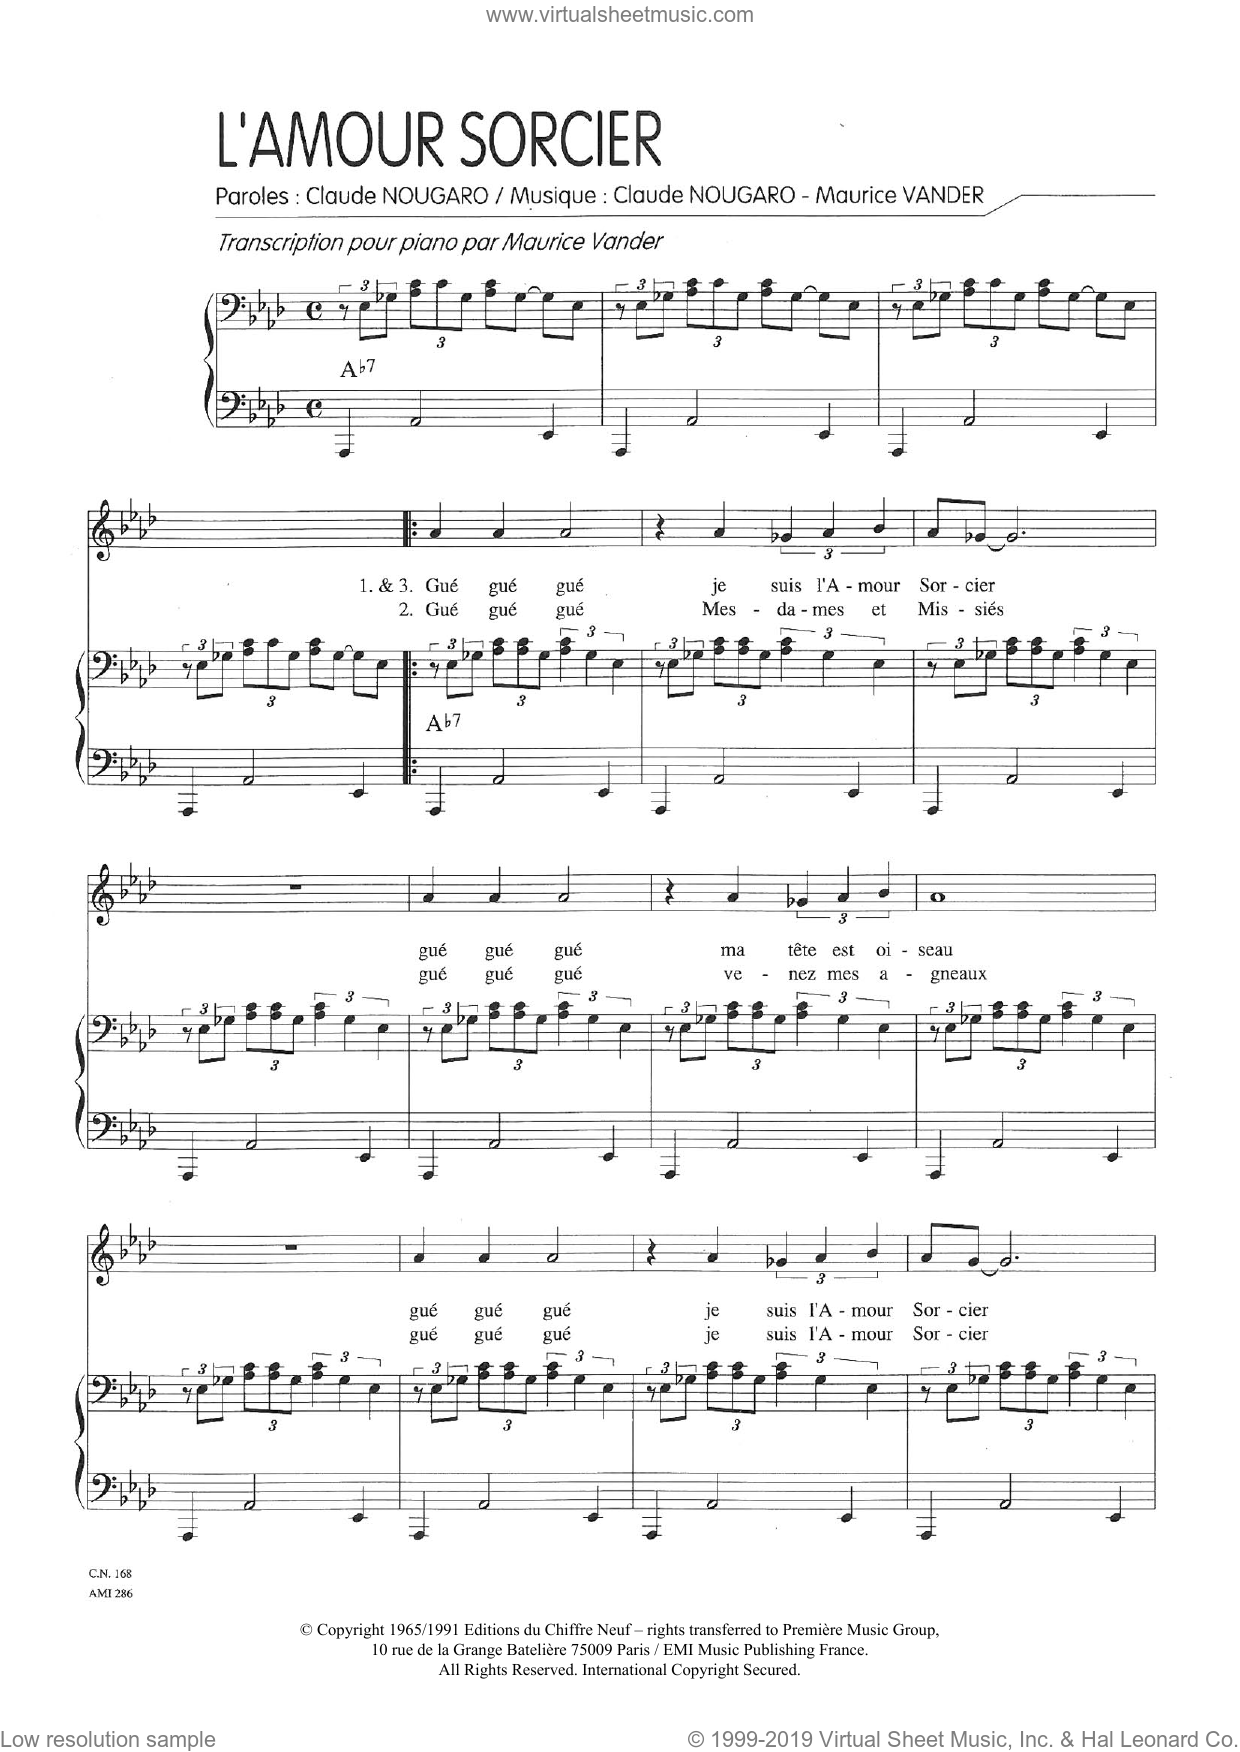 Amour Sorcier sheet music for voice and piano by Claude Nougaro